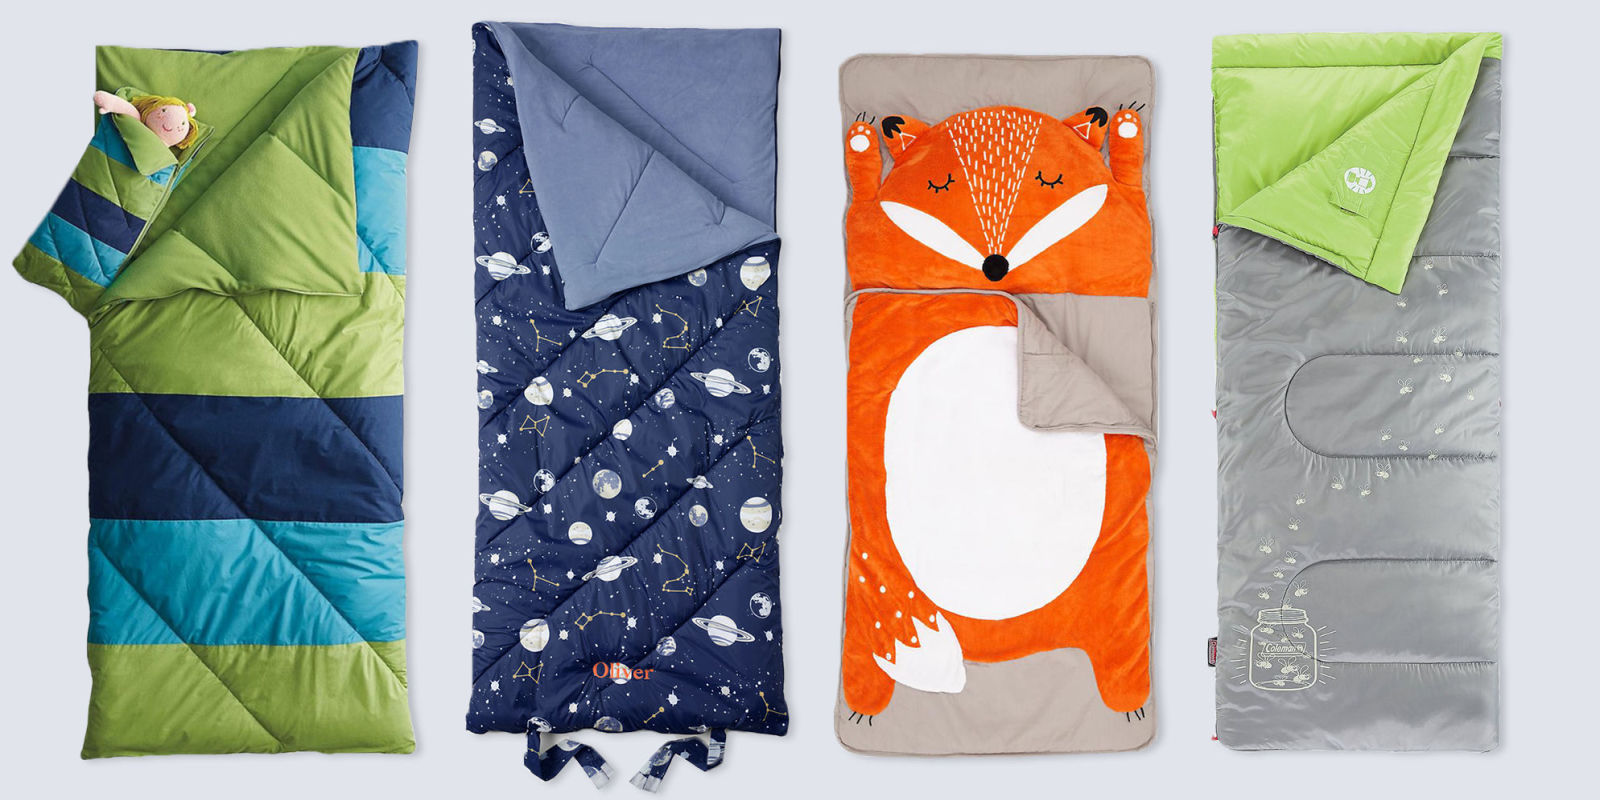 The Ten Sleeping Bags Above Were Evaluated Based On Following Criteria